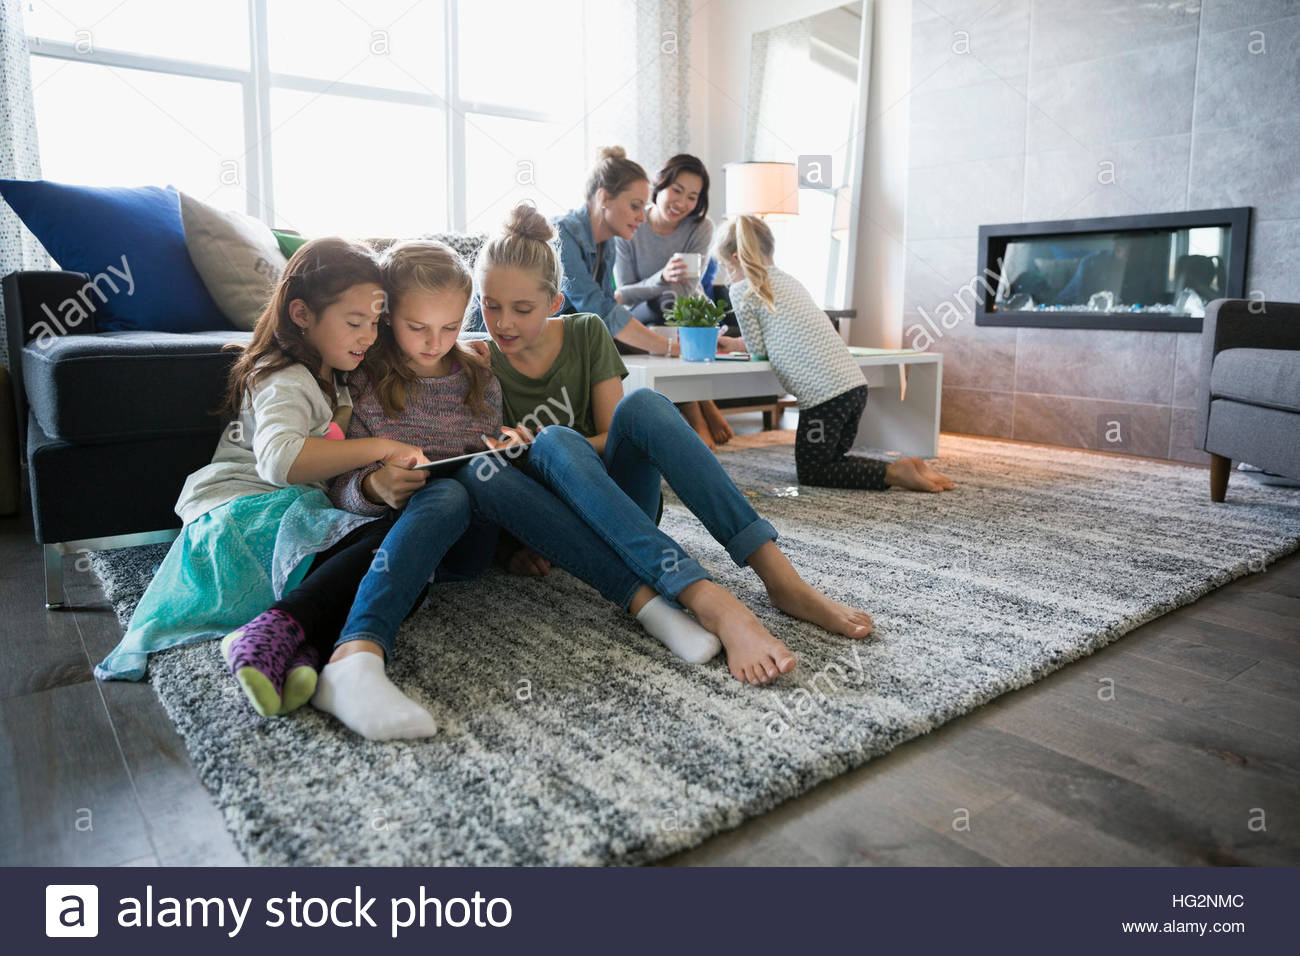 Girls Enjoying Play Date Using Digital Tablet On Living Room Floor With Mothers In Background